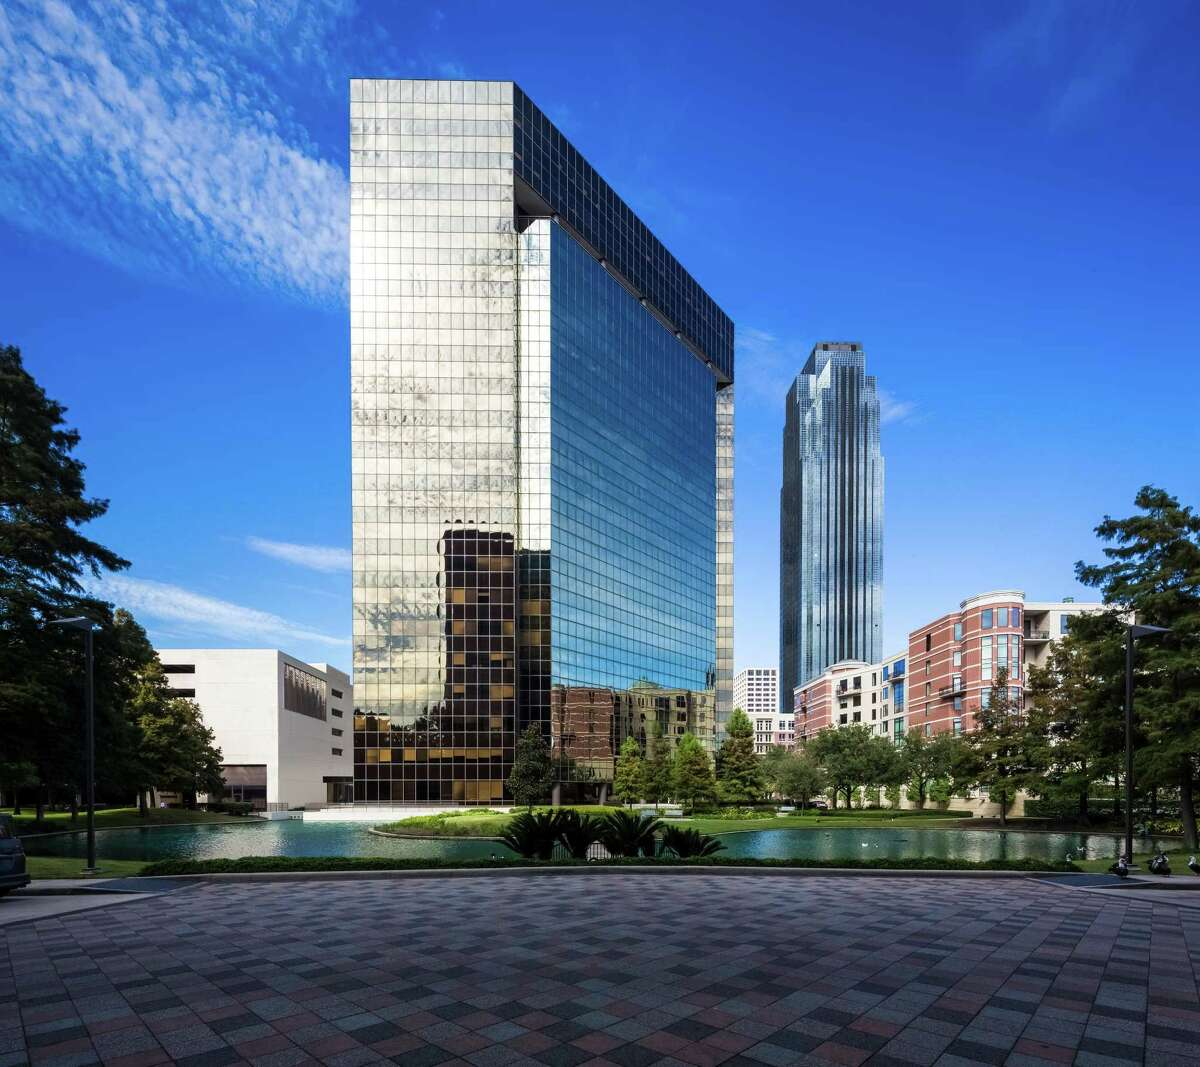 Stream Realty Partners manages and leases 3040 Post Oak, a 22-story, 426,009-square-foot office building in the Galleria area.